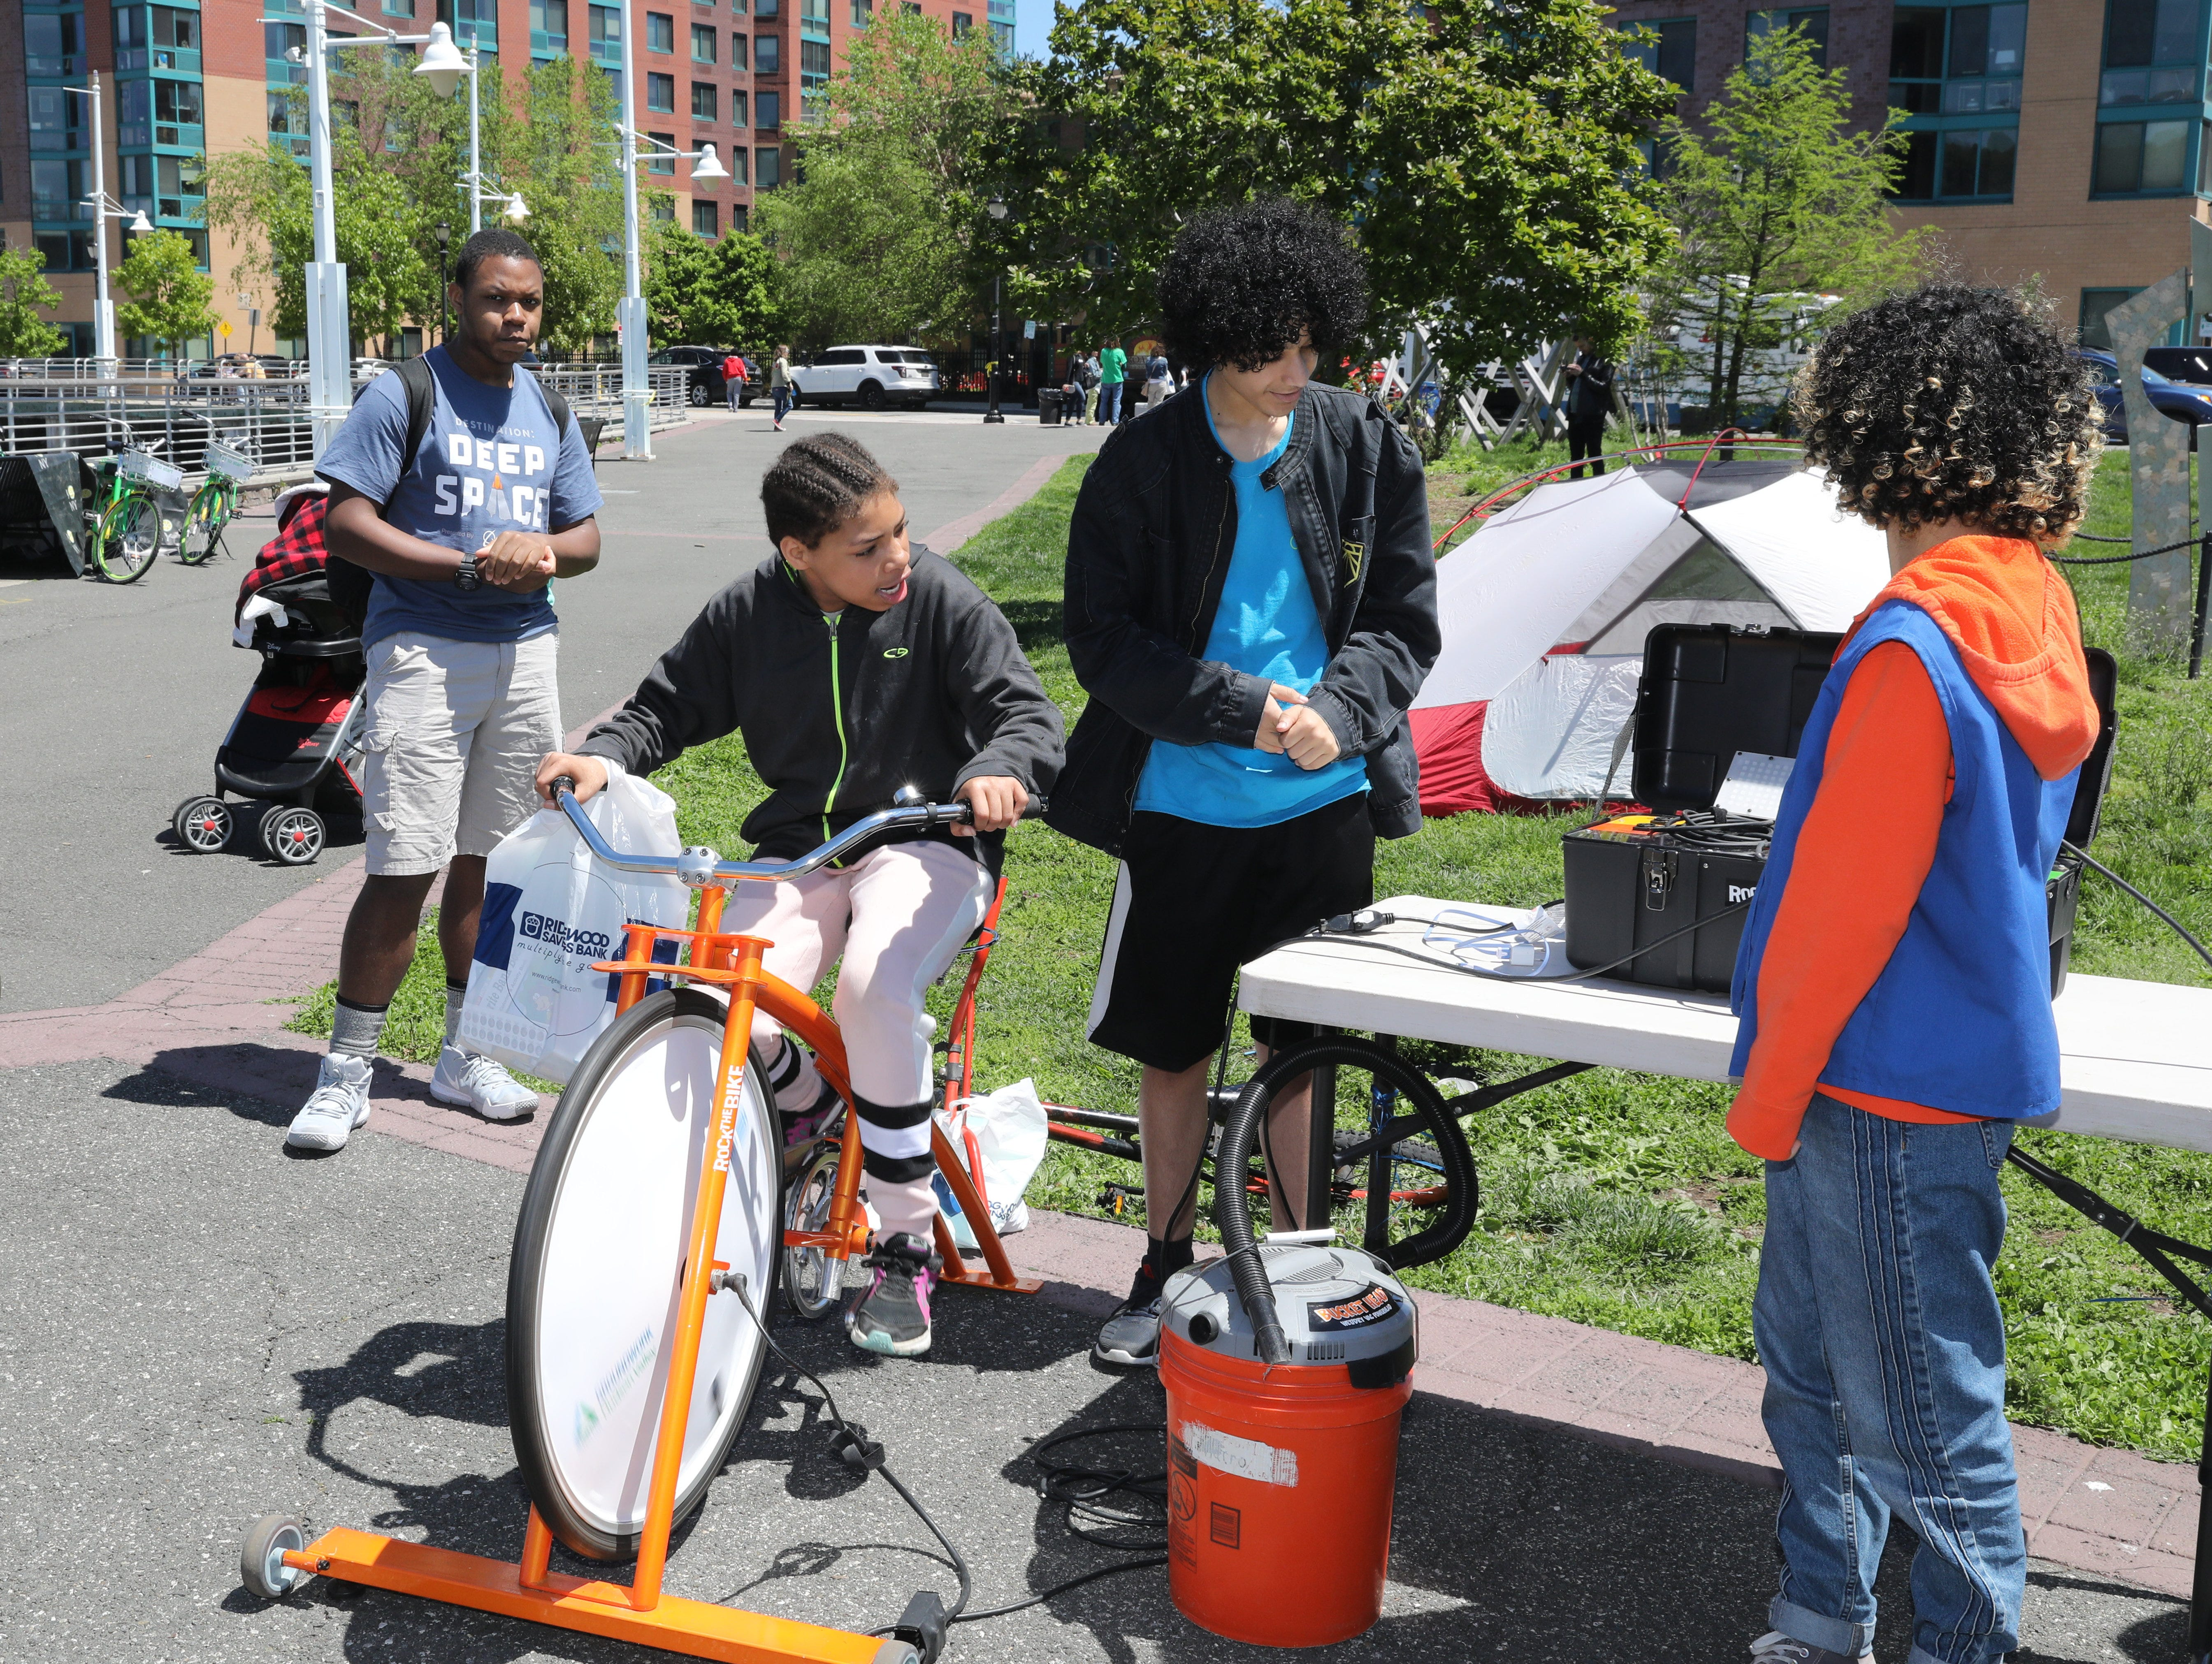 Children make some energy using a bicycle, during the opening of the Science Barge at its 11th annual opening on the Hudson River in Yonkers, May 11, 2019. The floating environmental education center  has undergone an almost $1million enhancement, completed over the past two years.